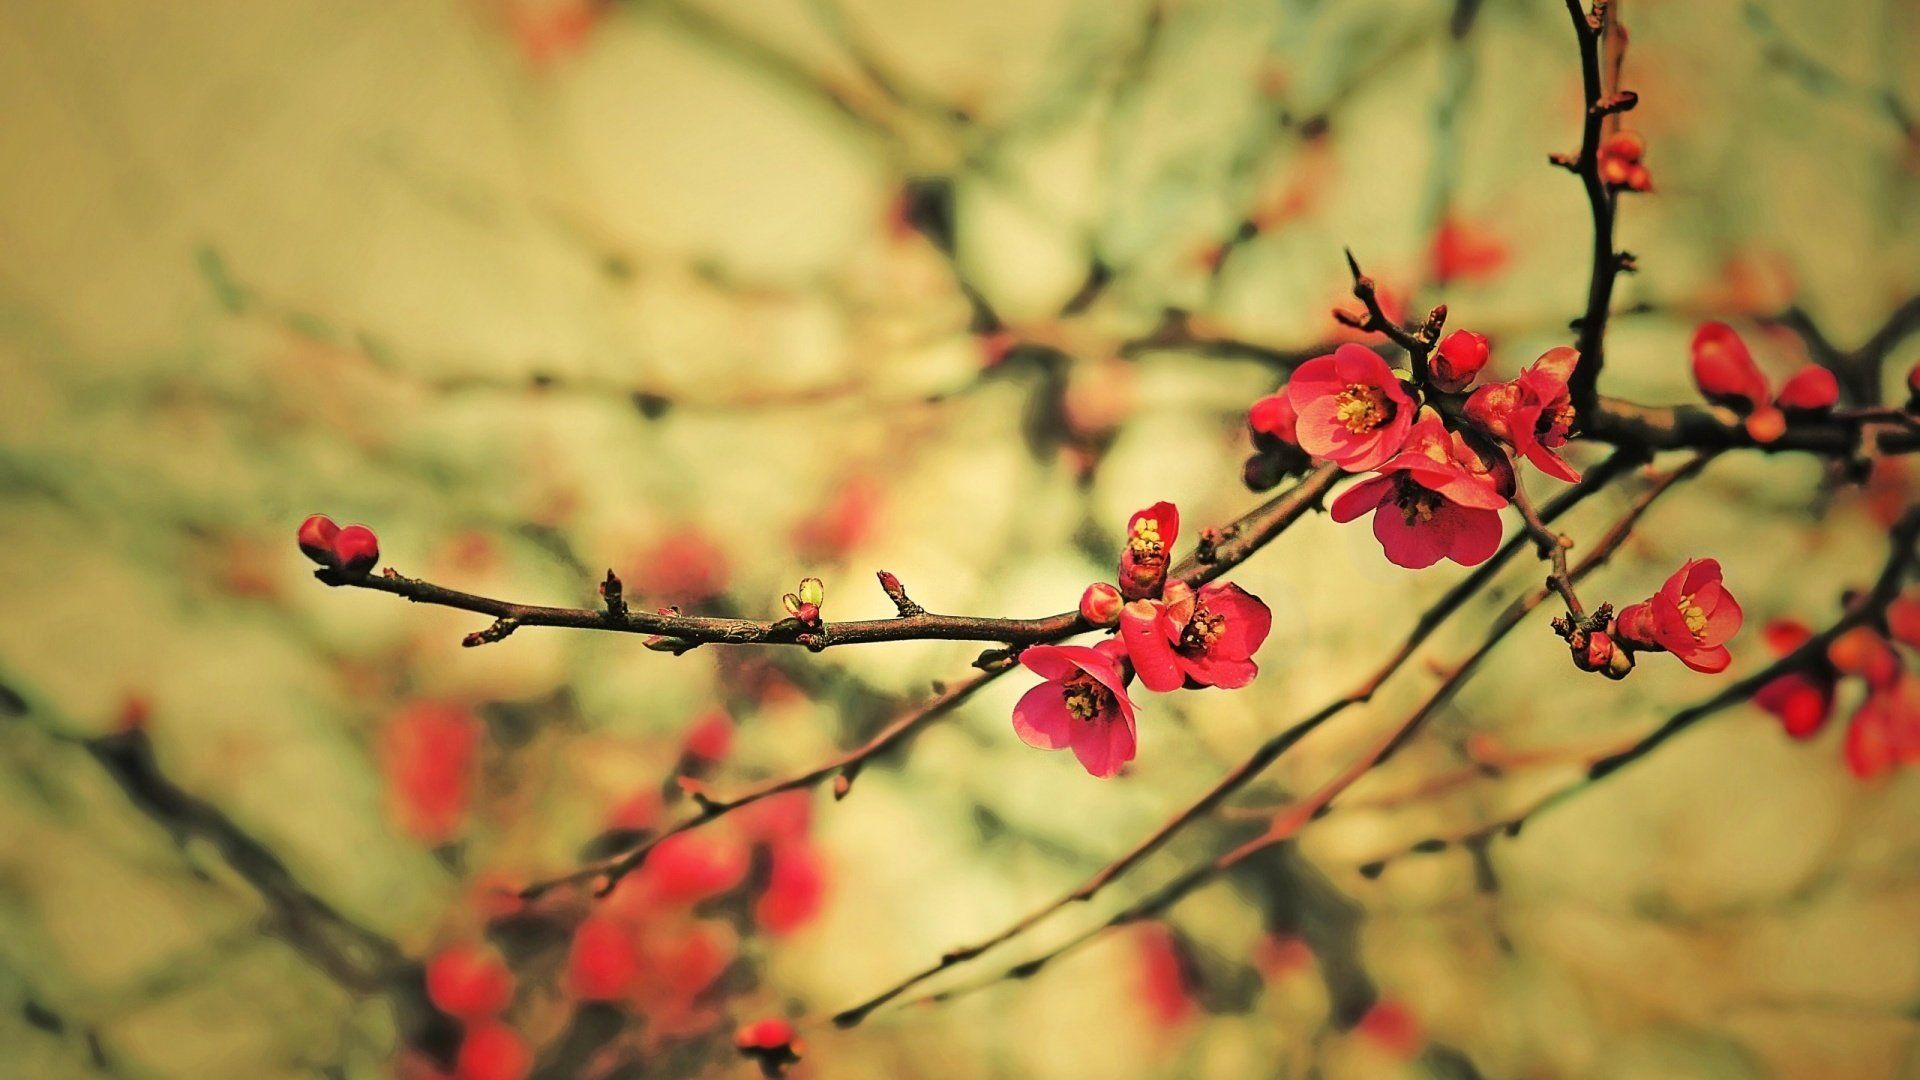 Cute Spring background image